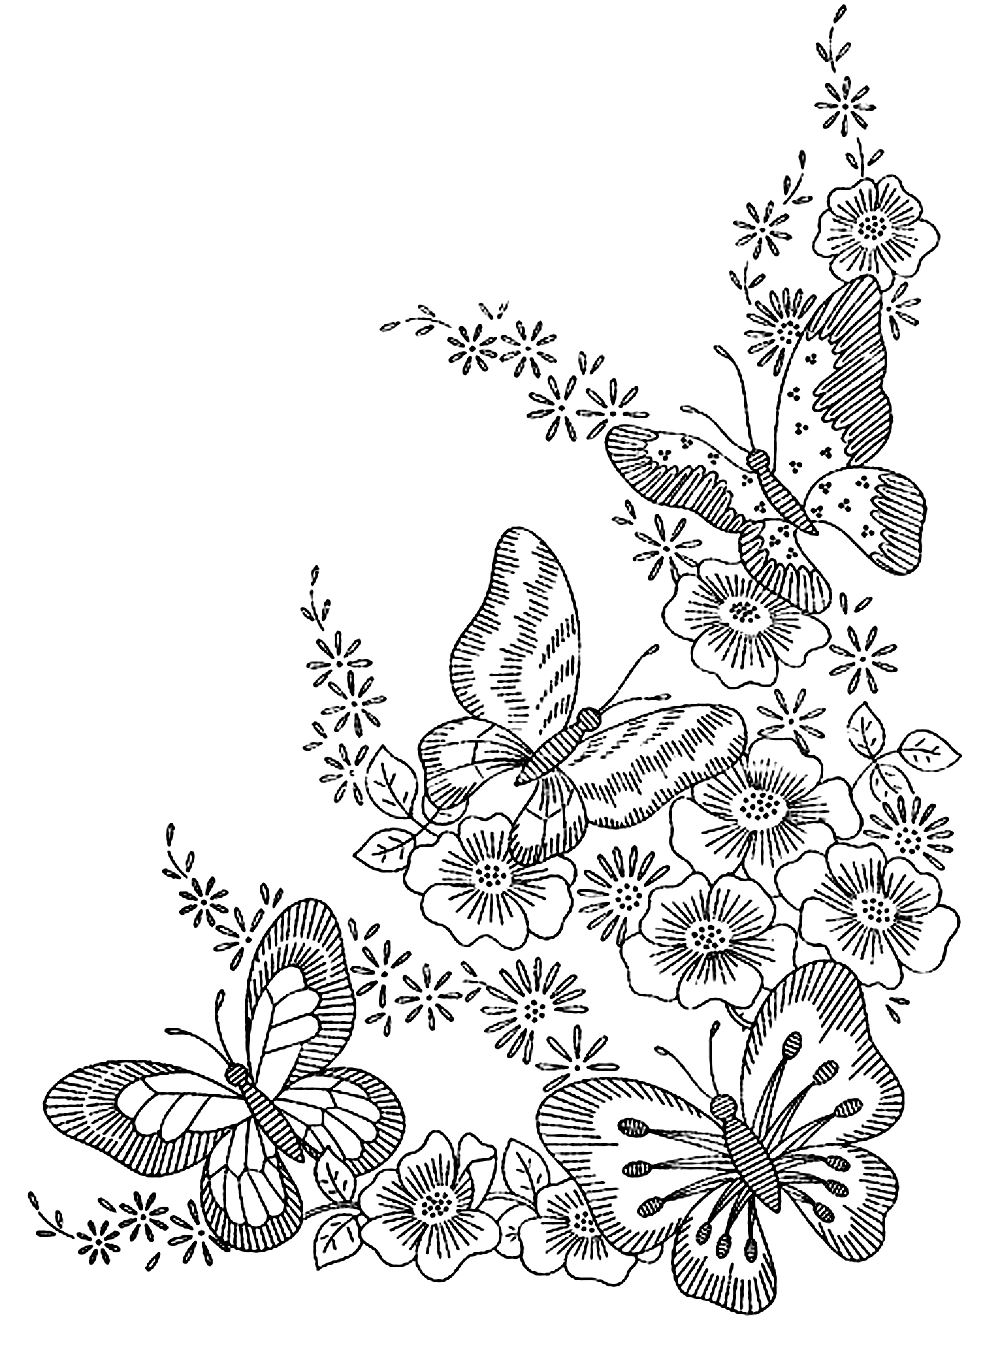 Insectes coloriages difficiles pour adultes coloriage - Coloriage adulte difficile ...